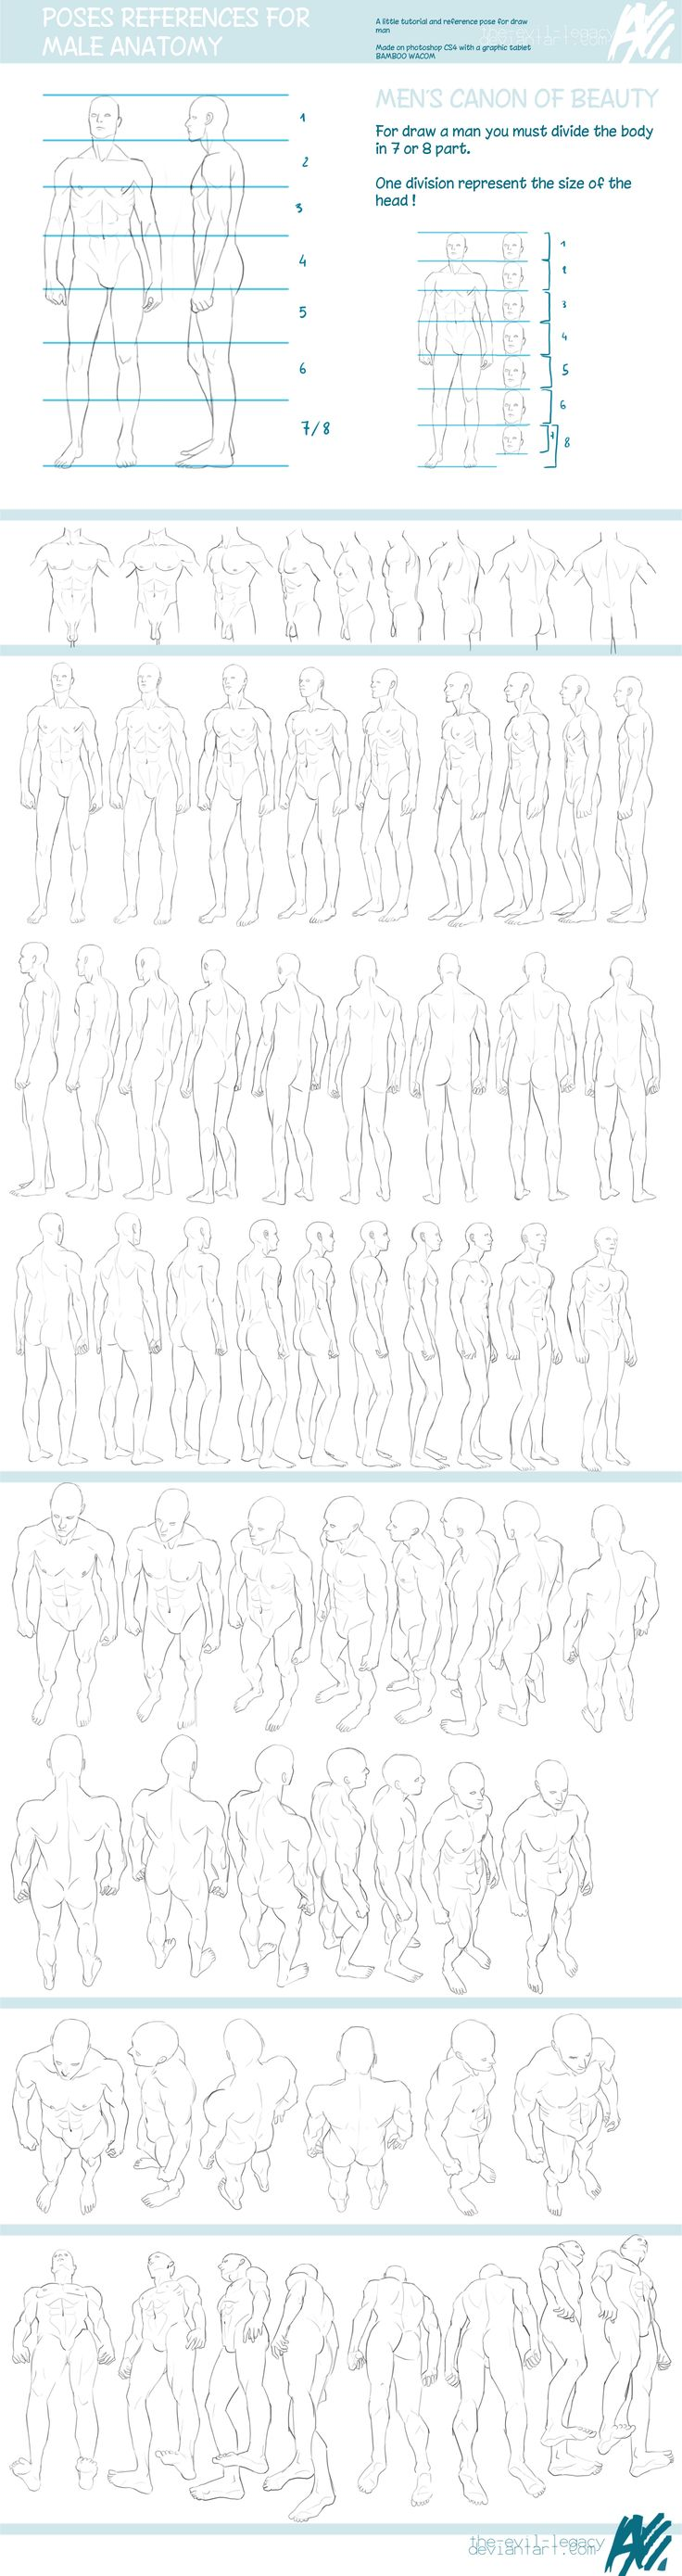 TUTO - male reference pose by ~the-evil-legacy on deviantART ✤ || CHARACTER DESIGN REFERENCES | Find more at https://www.facebook.com/CharacterDesignReferences if you're looking for: #line #art #character #design #model #sheet #illustration #expressions #best #concept #animation #drawing #archive #library #reference #anatomy #traditional #draw #development #artist #pose #settei #gestures #how #to #tutorial #conceptart #modelsheet #cartoon @Rachel Oberst Design References